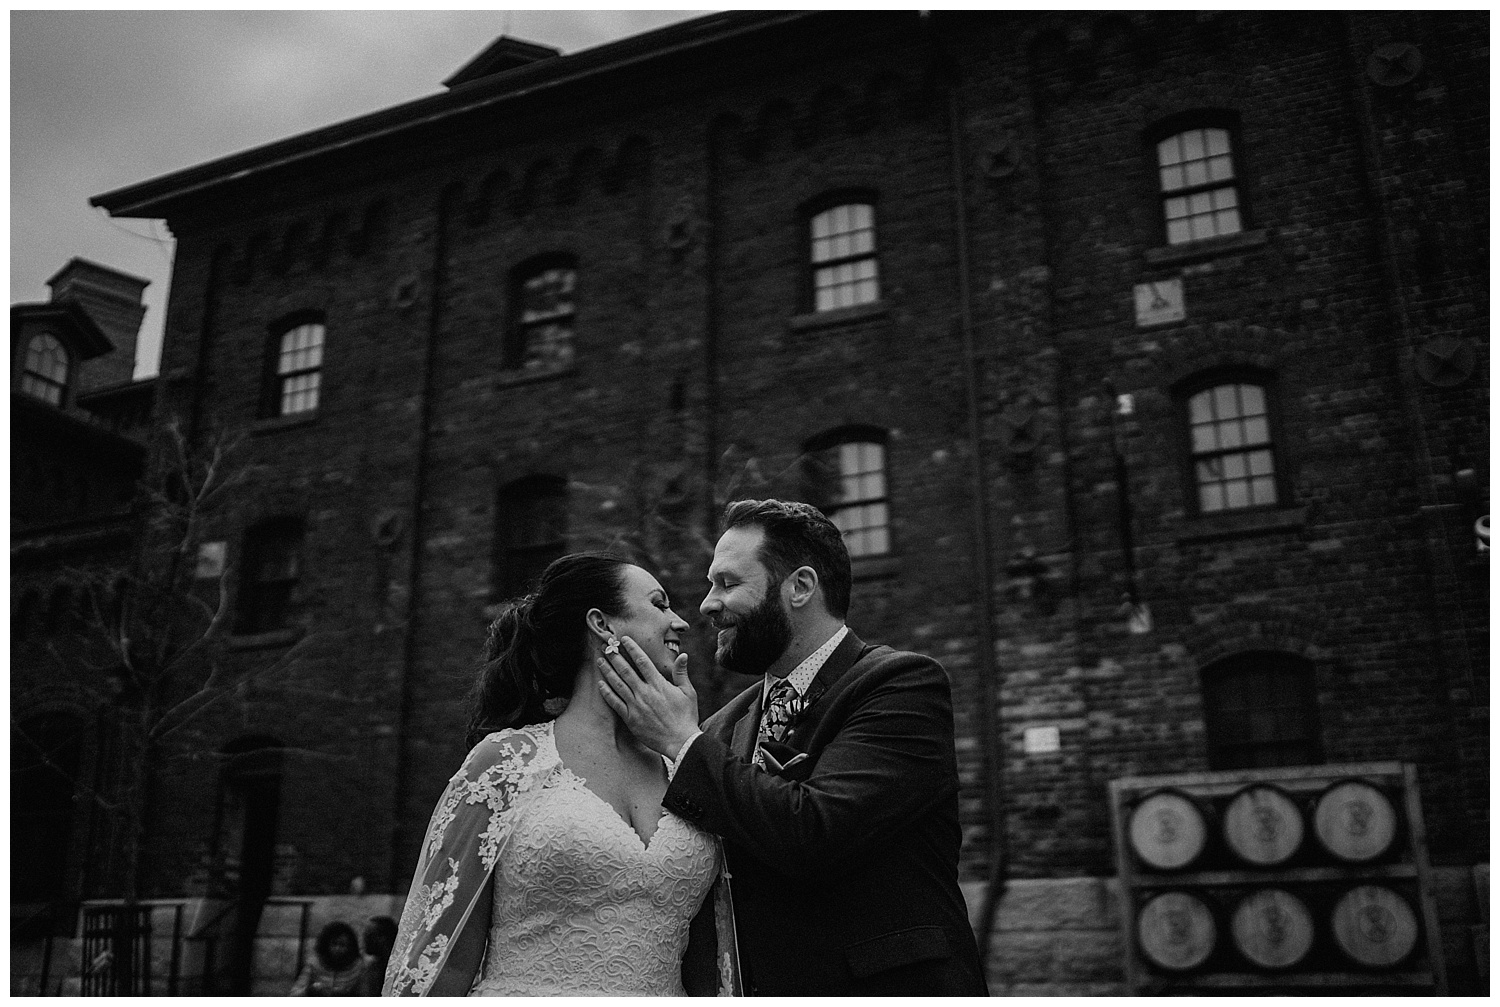 Katie Marie Photography | Archeo Wedding Arta Gallery Wedding | Distillery District Wedding | Toronto Wedding Photographer | Hamilton Toronto Ontario Wedding Photographer |_0068.jpg